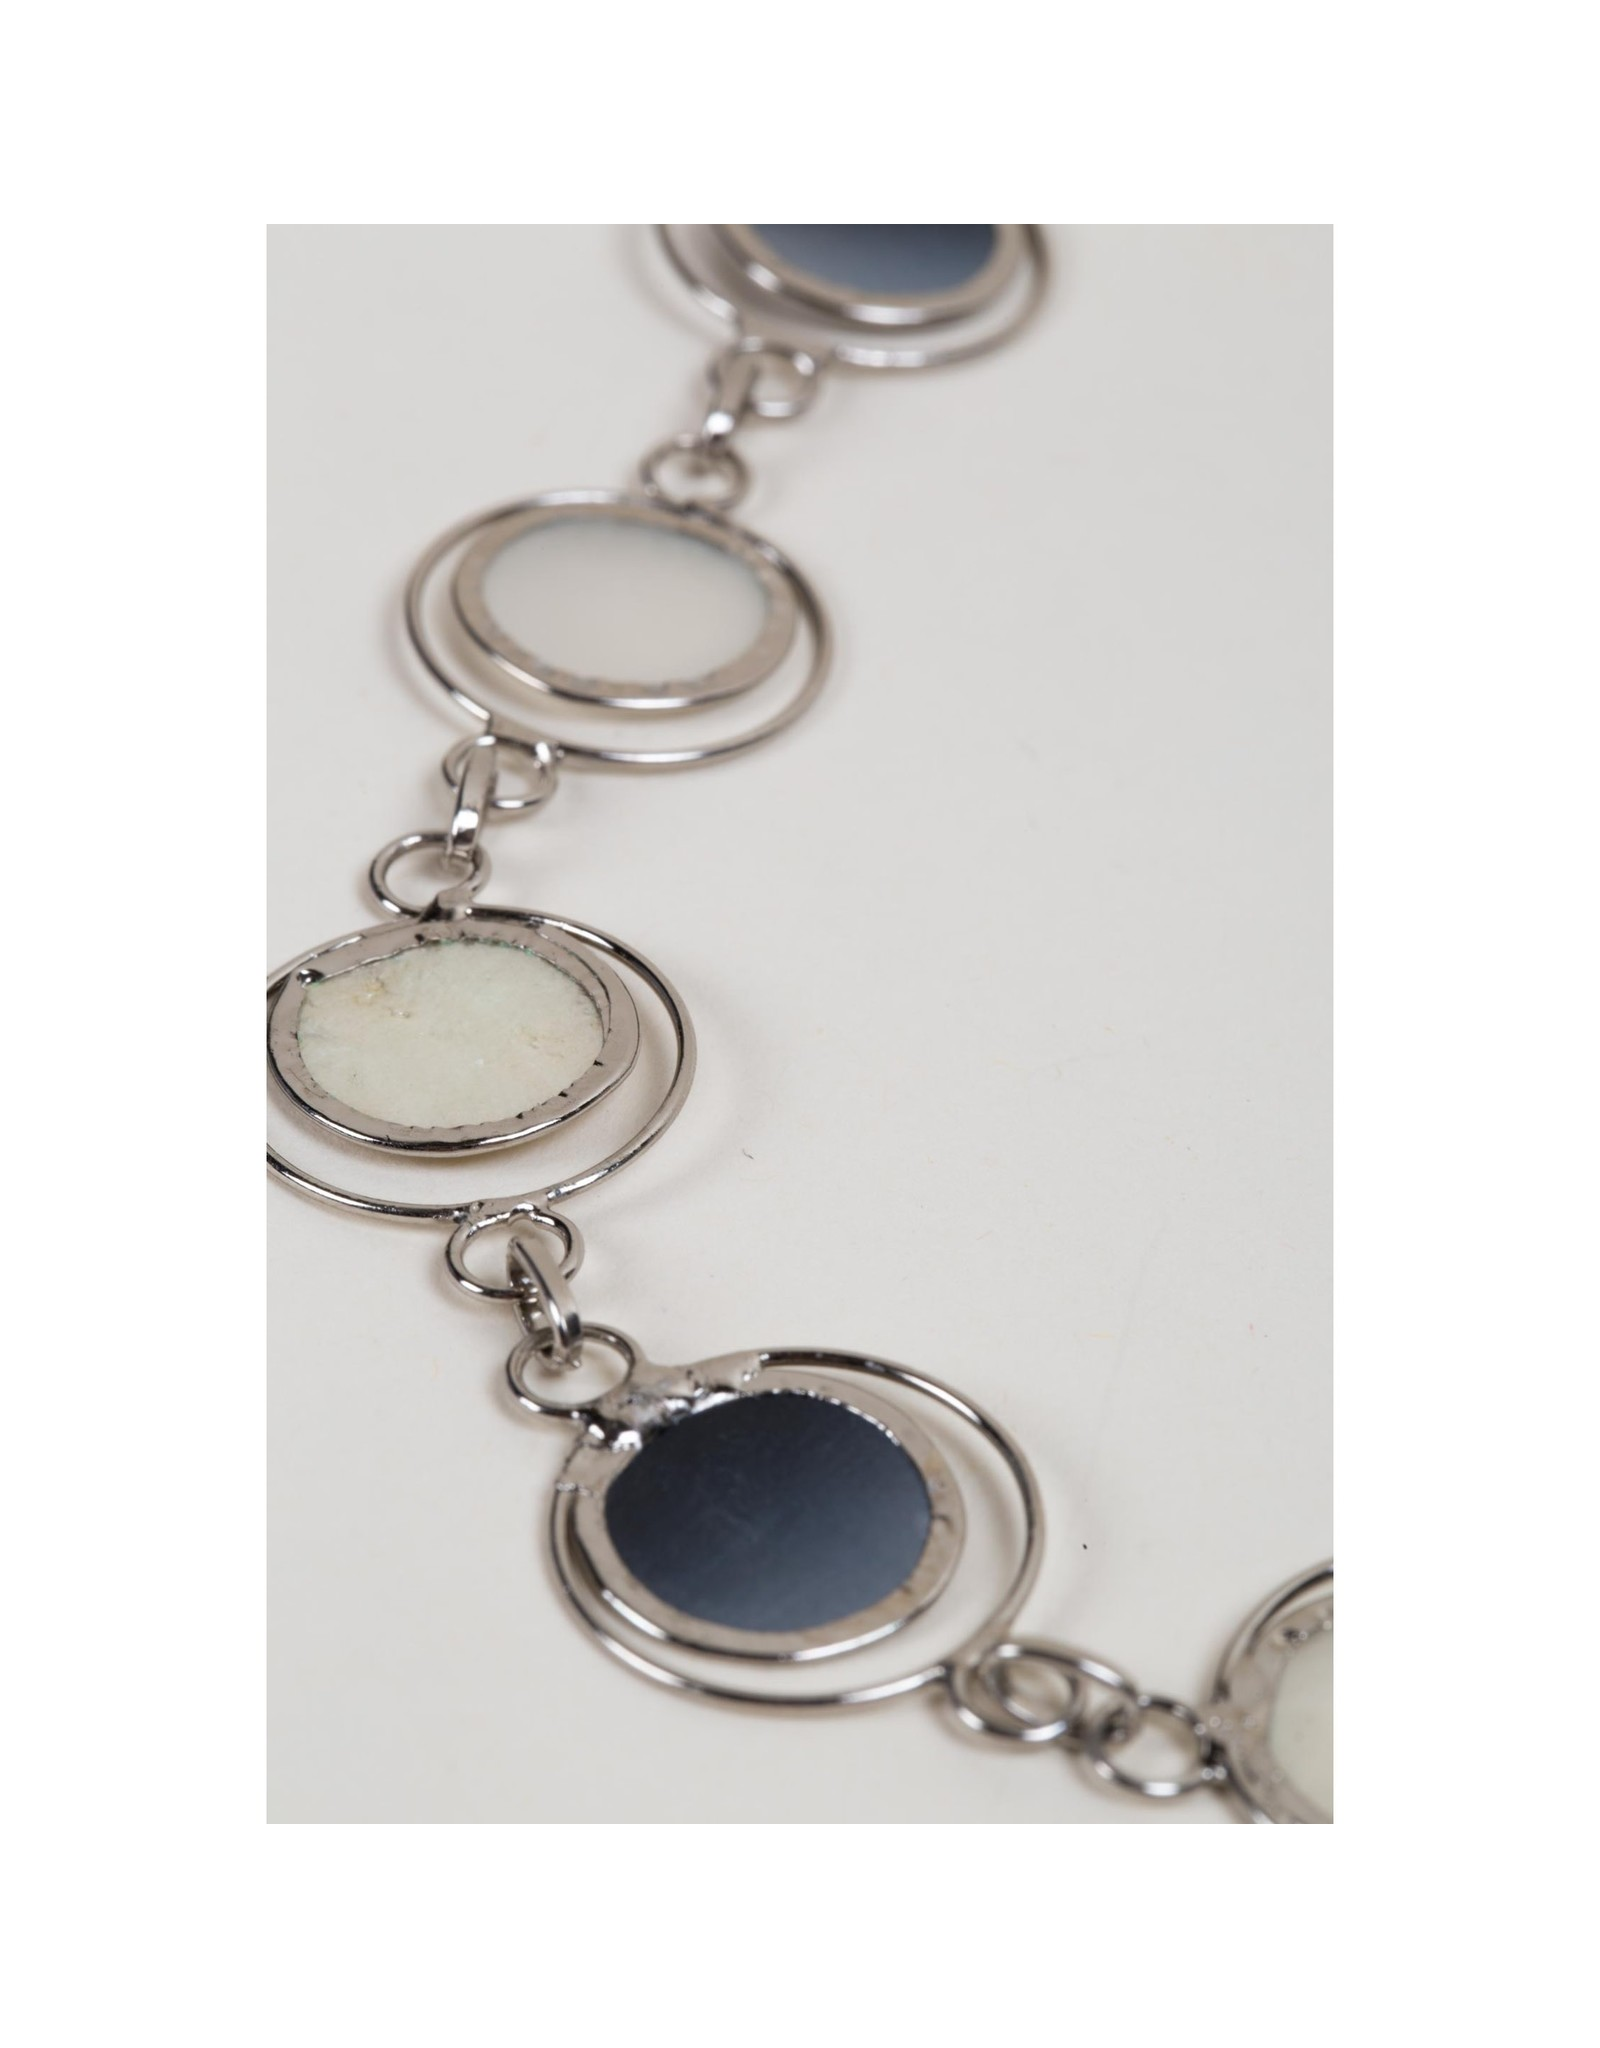 TTV USA Moon Phase Necklace, Philippines